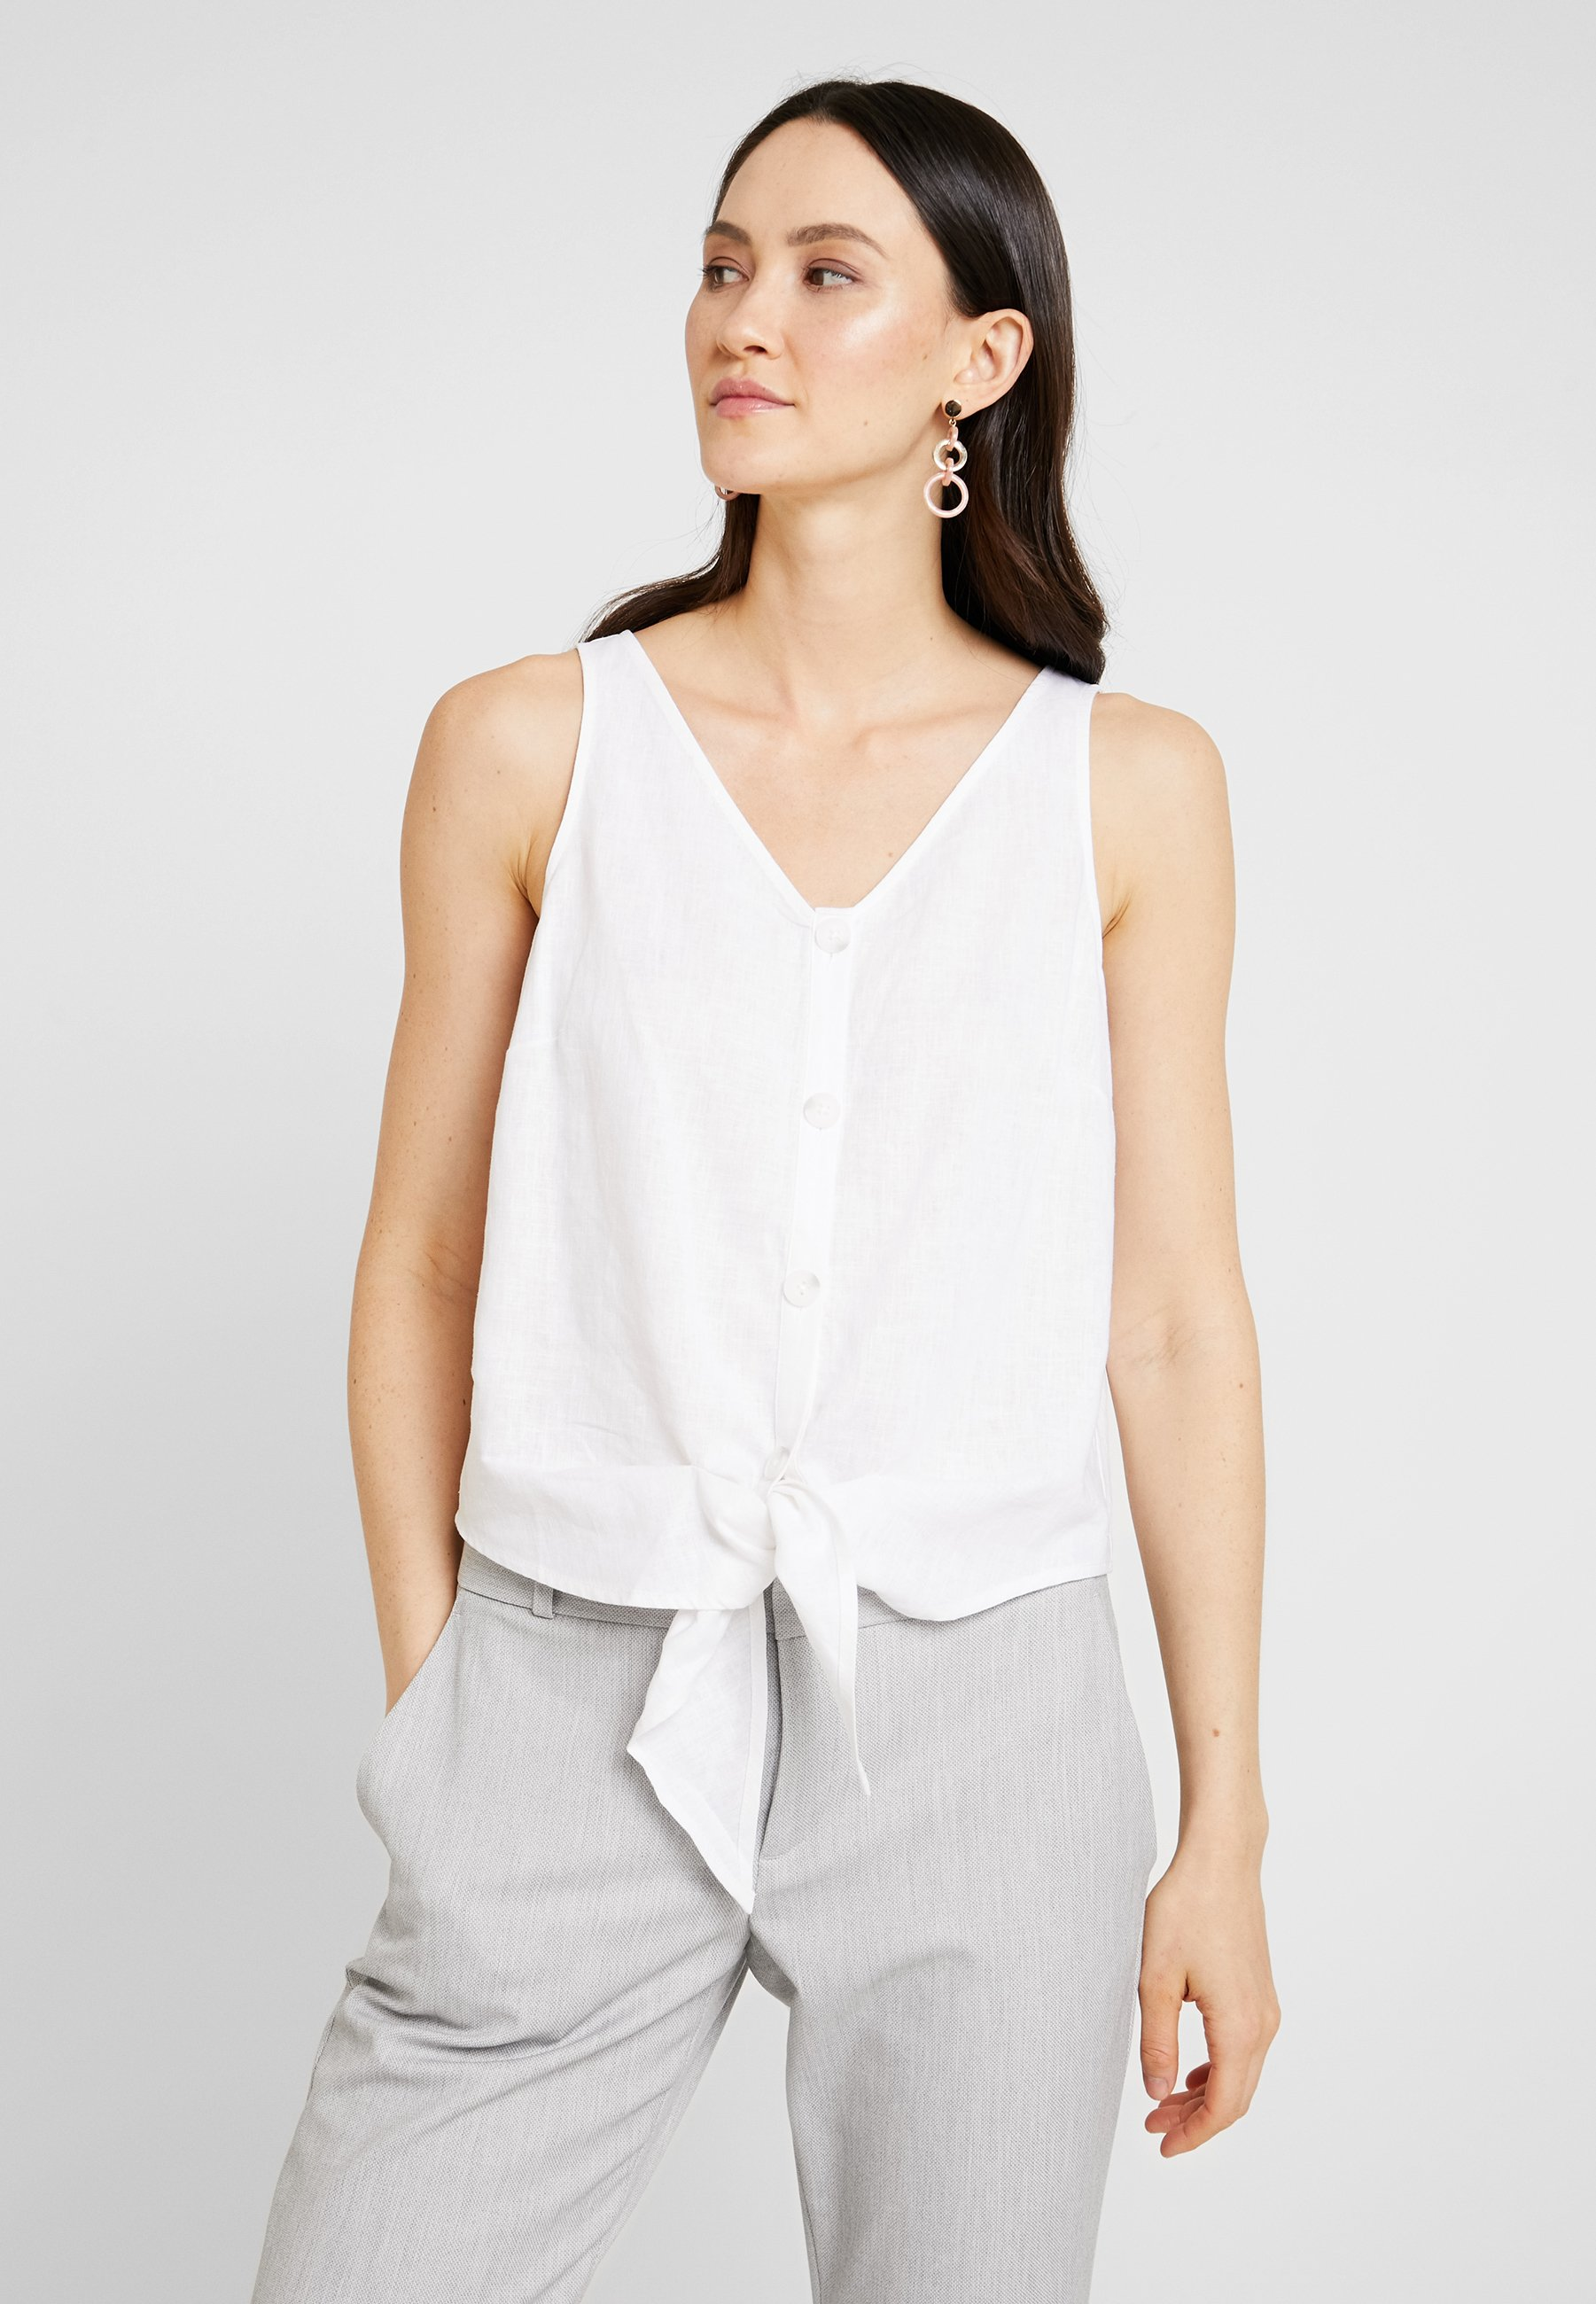 draft SleevelessWhite Re Re Re Blouse draft Blouse draft Knotted Knotted SleevelessWhite MpLUzGSVjq